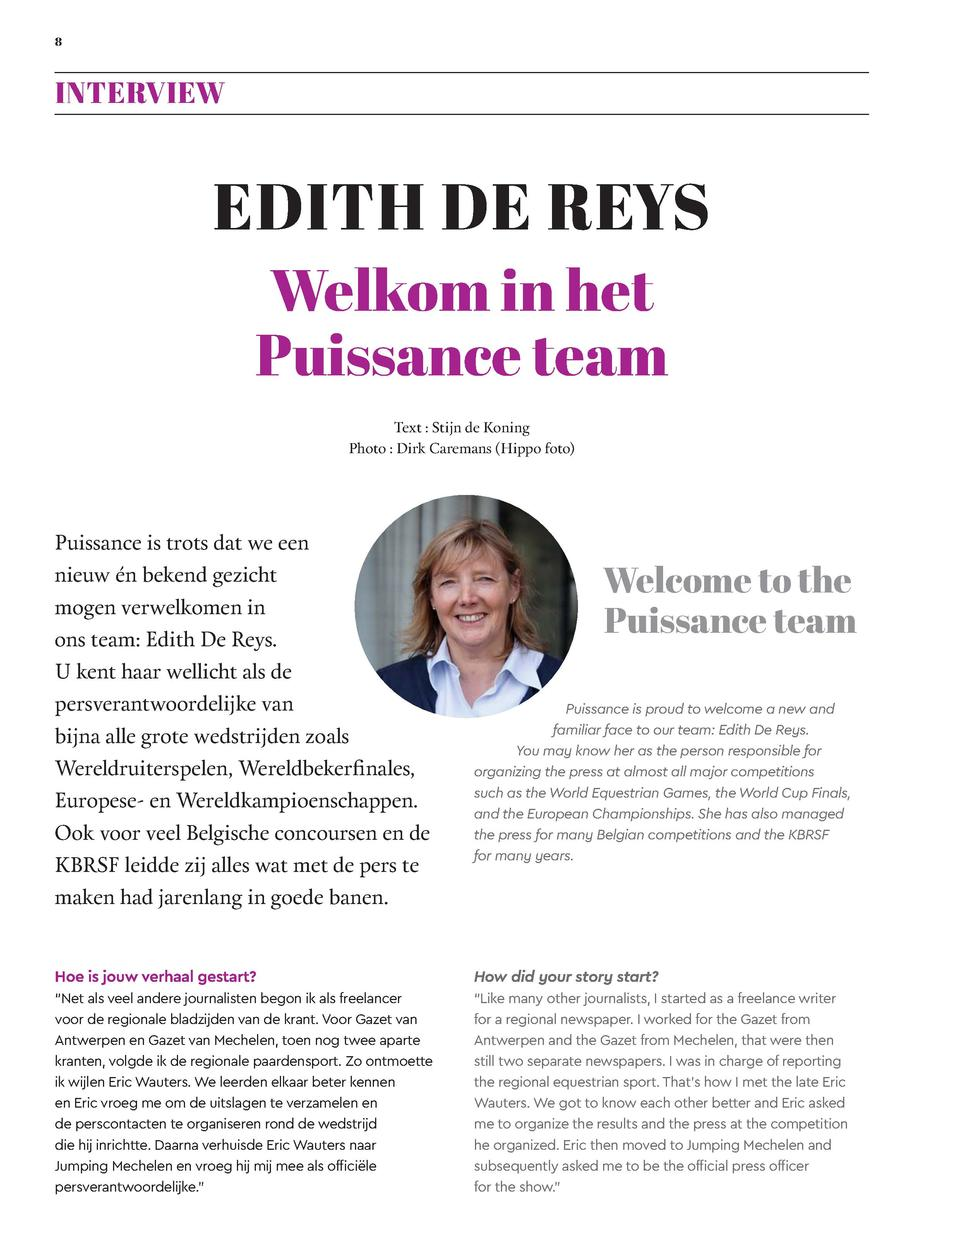 8  INTERVIEW  EDITH DE REYS Welkom in het Puissance team Text   Stijn de Koning Photo   Dirk Caremans  Hippo foto   Puissa...